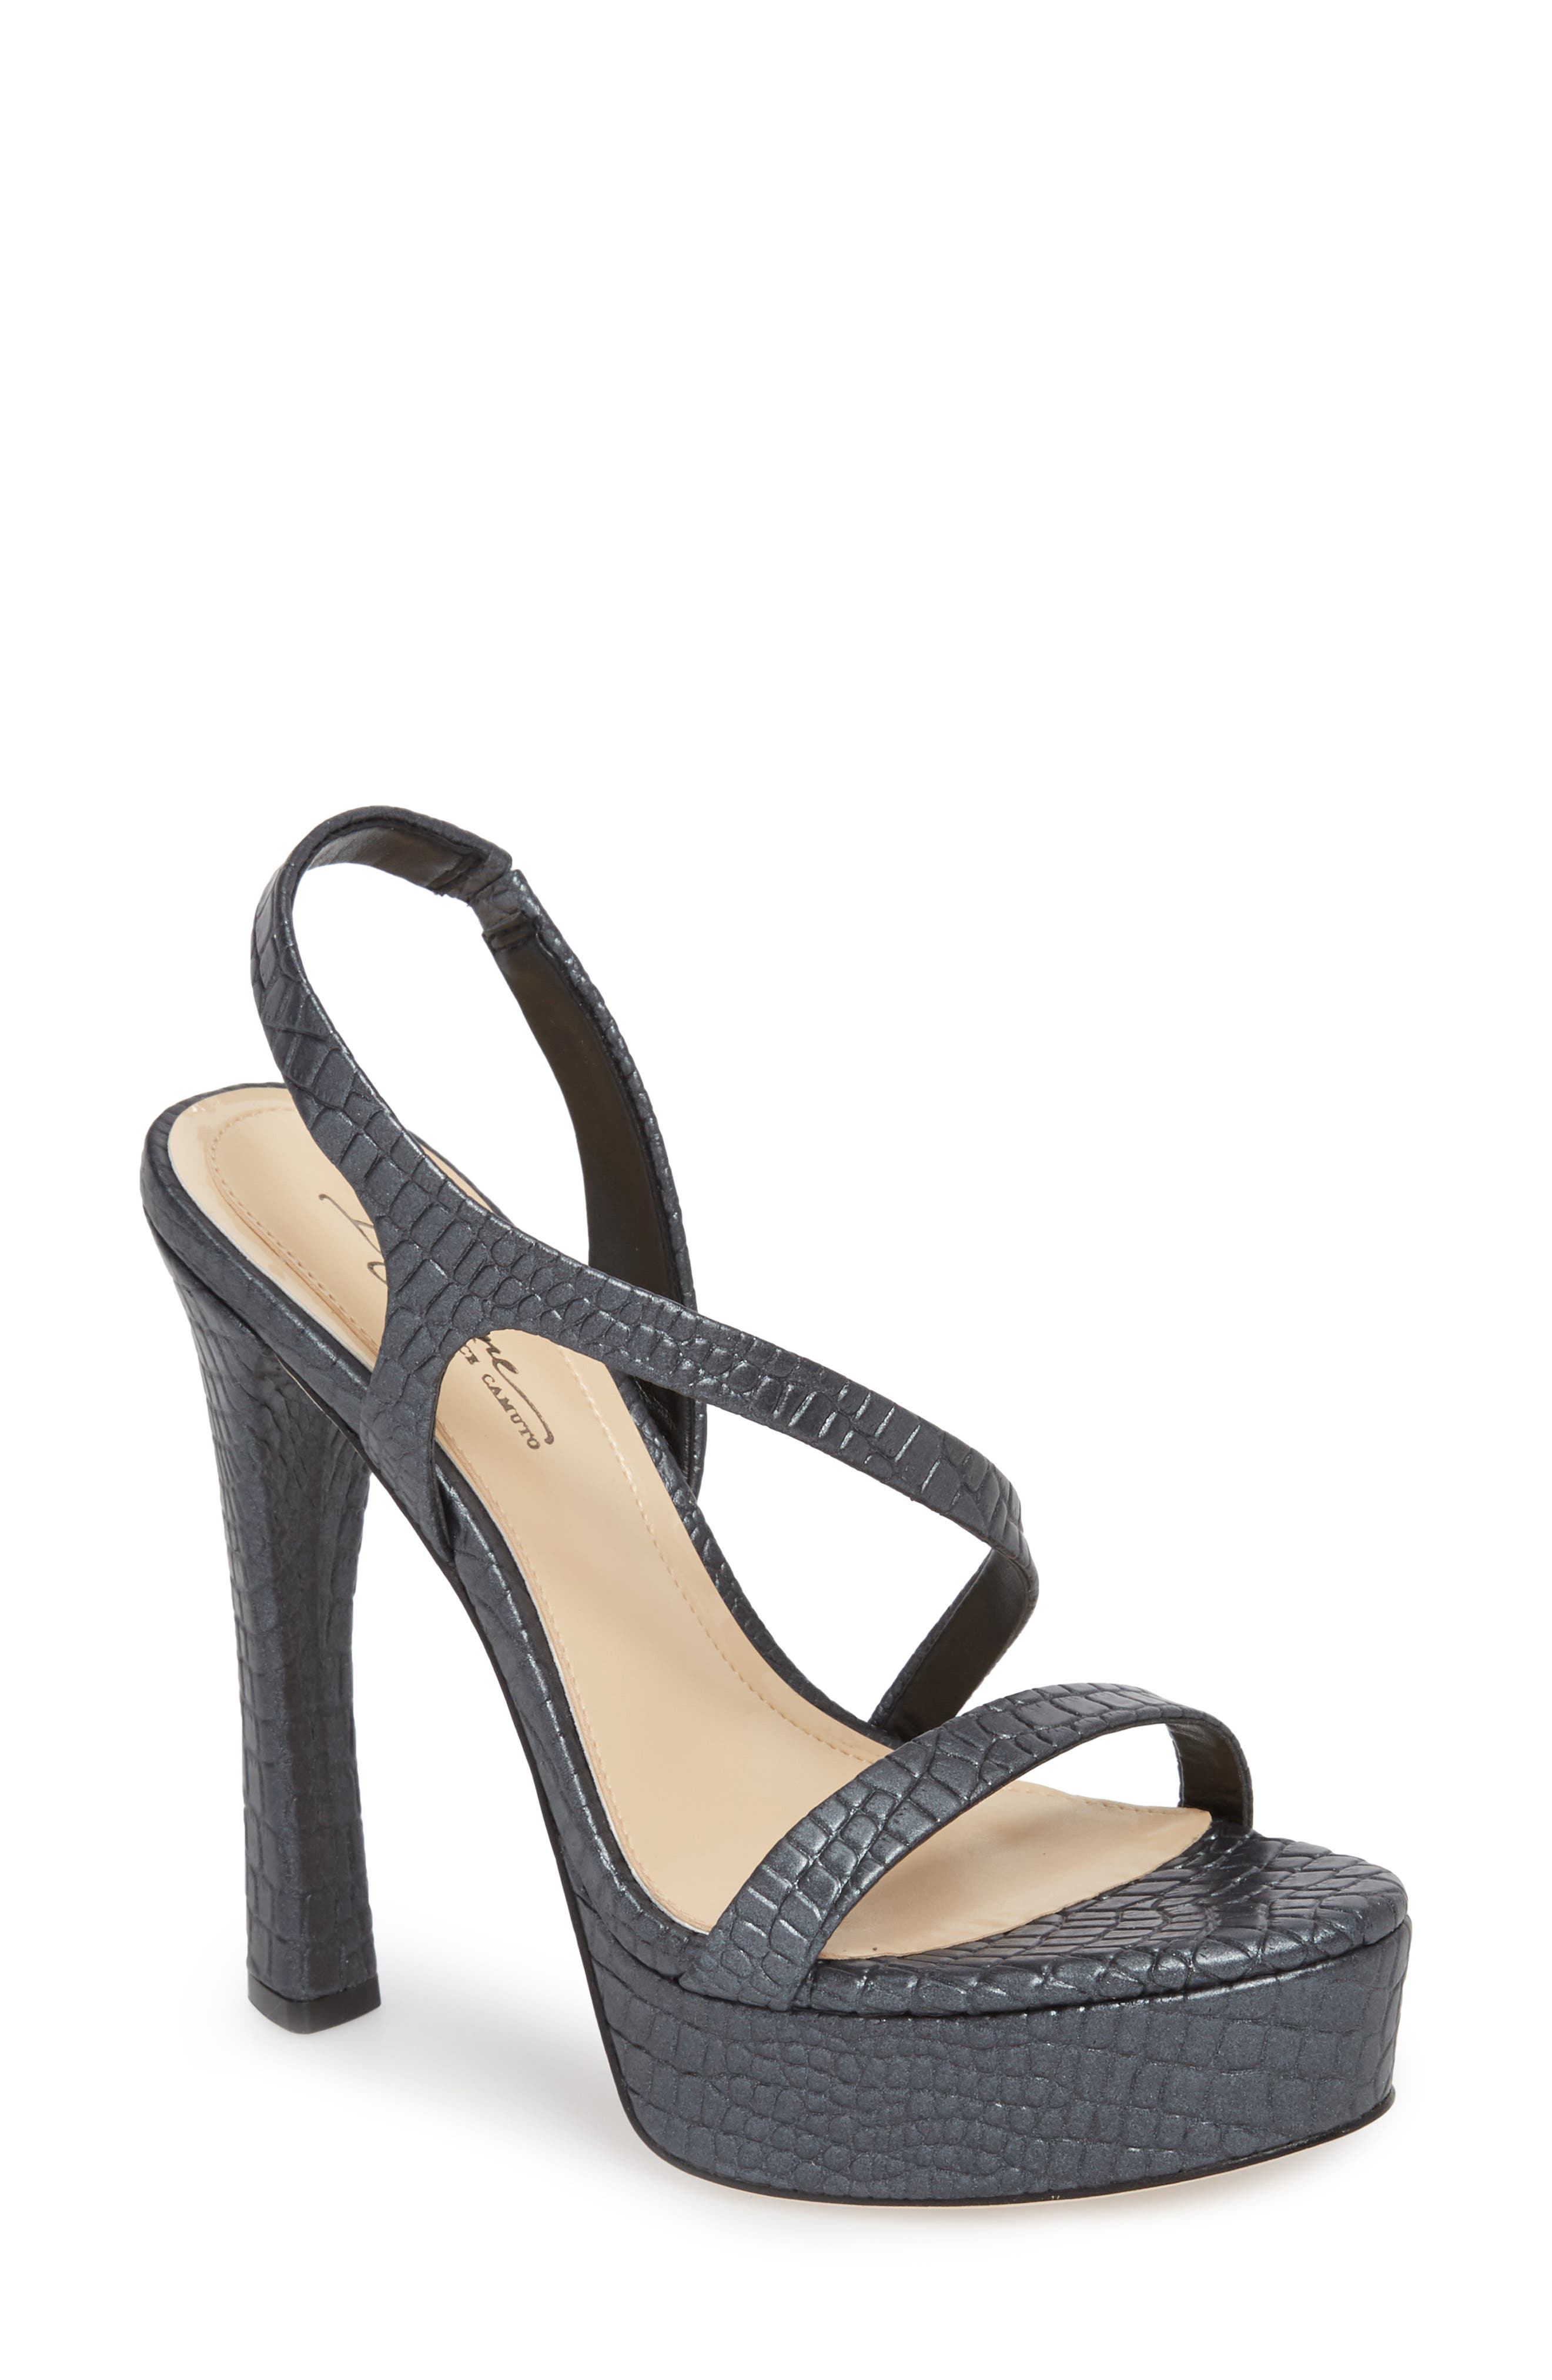 Imagine By Vince Camuto Piera Platform Sandal- Black